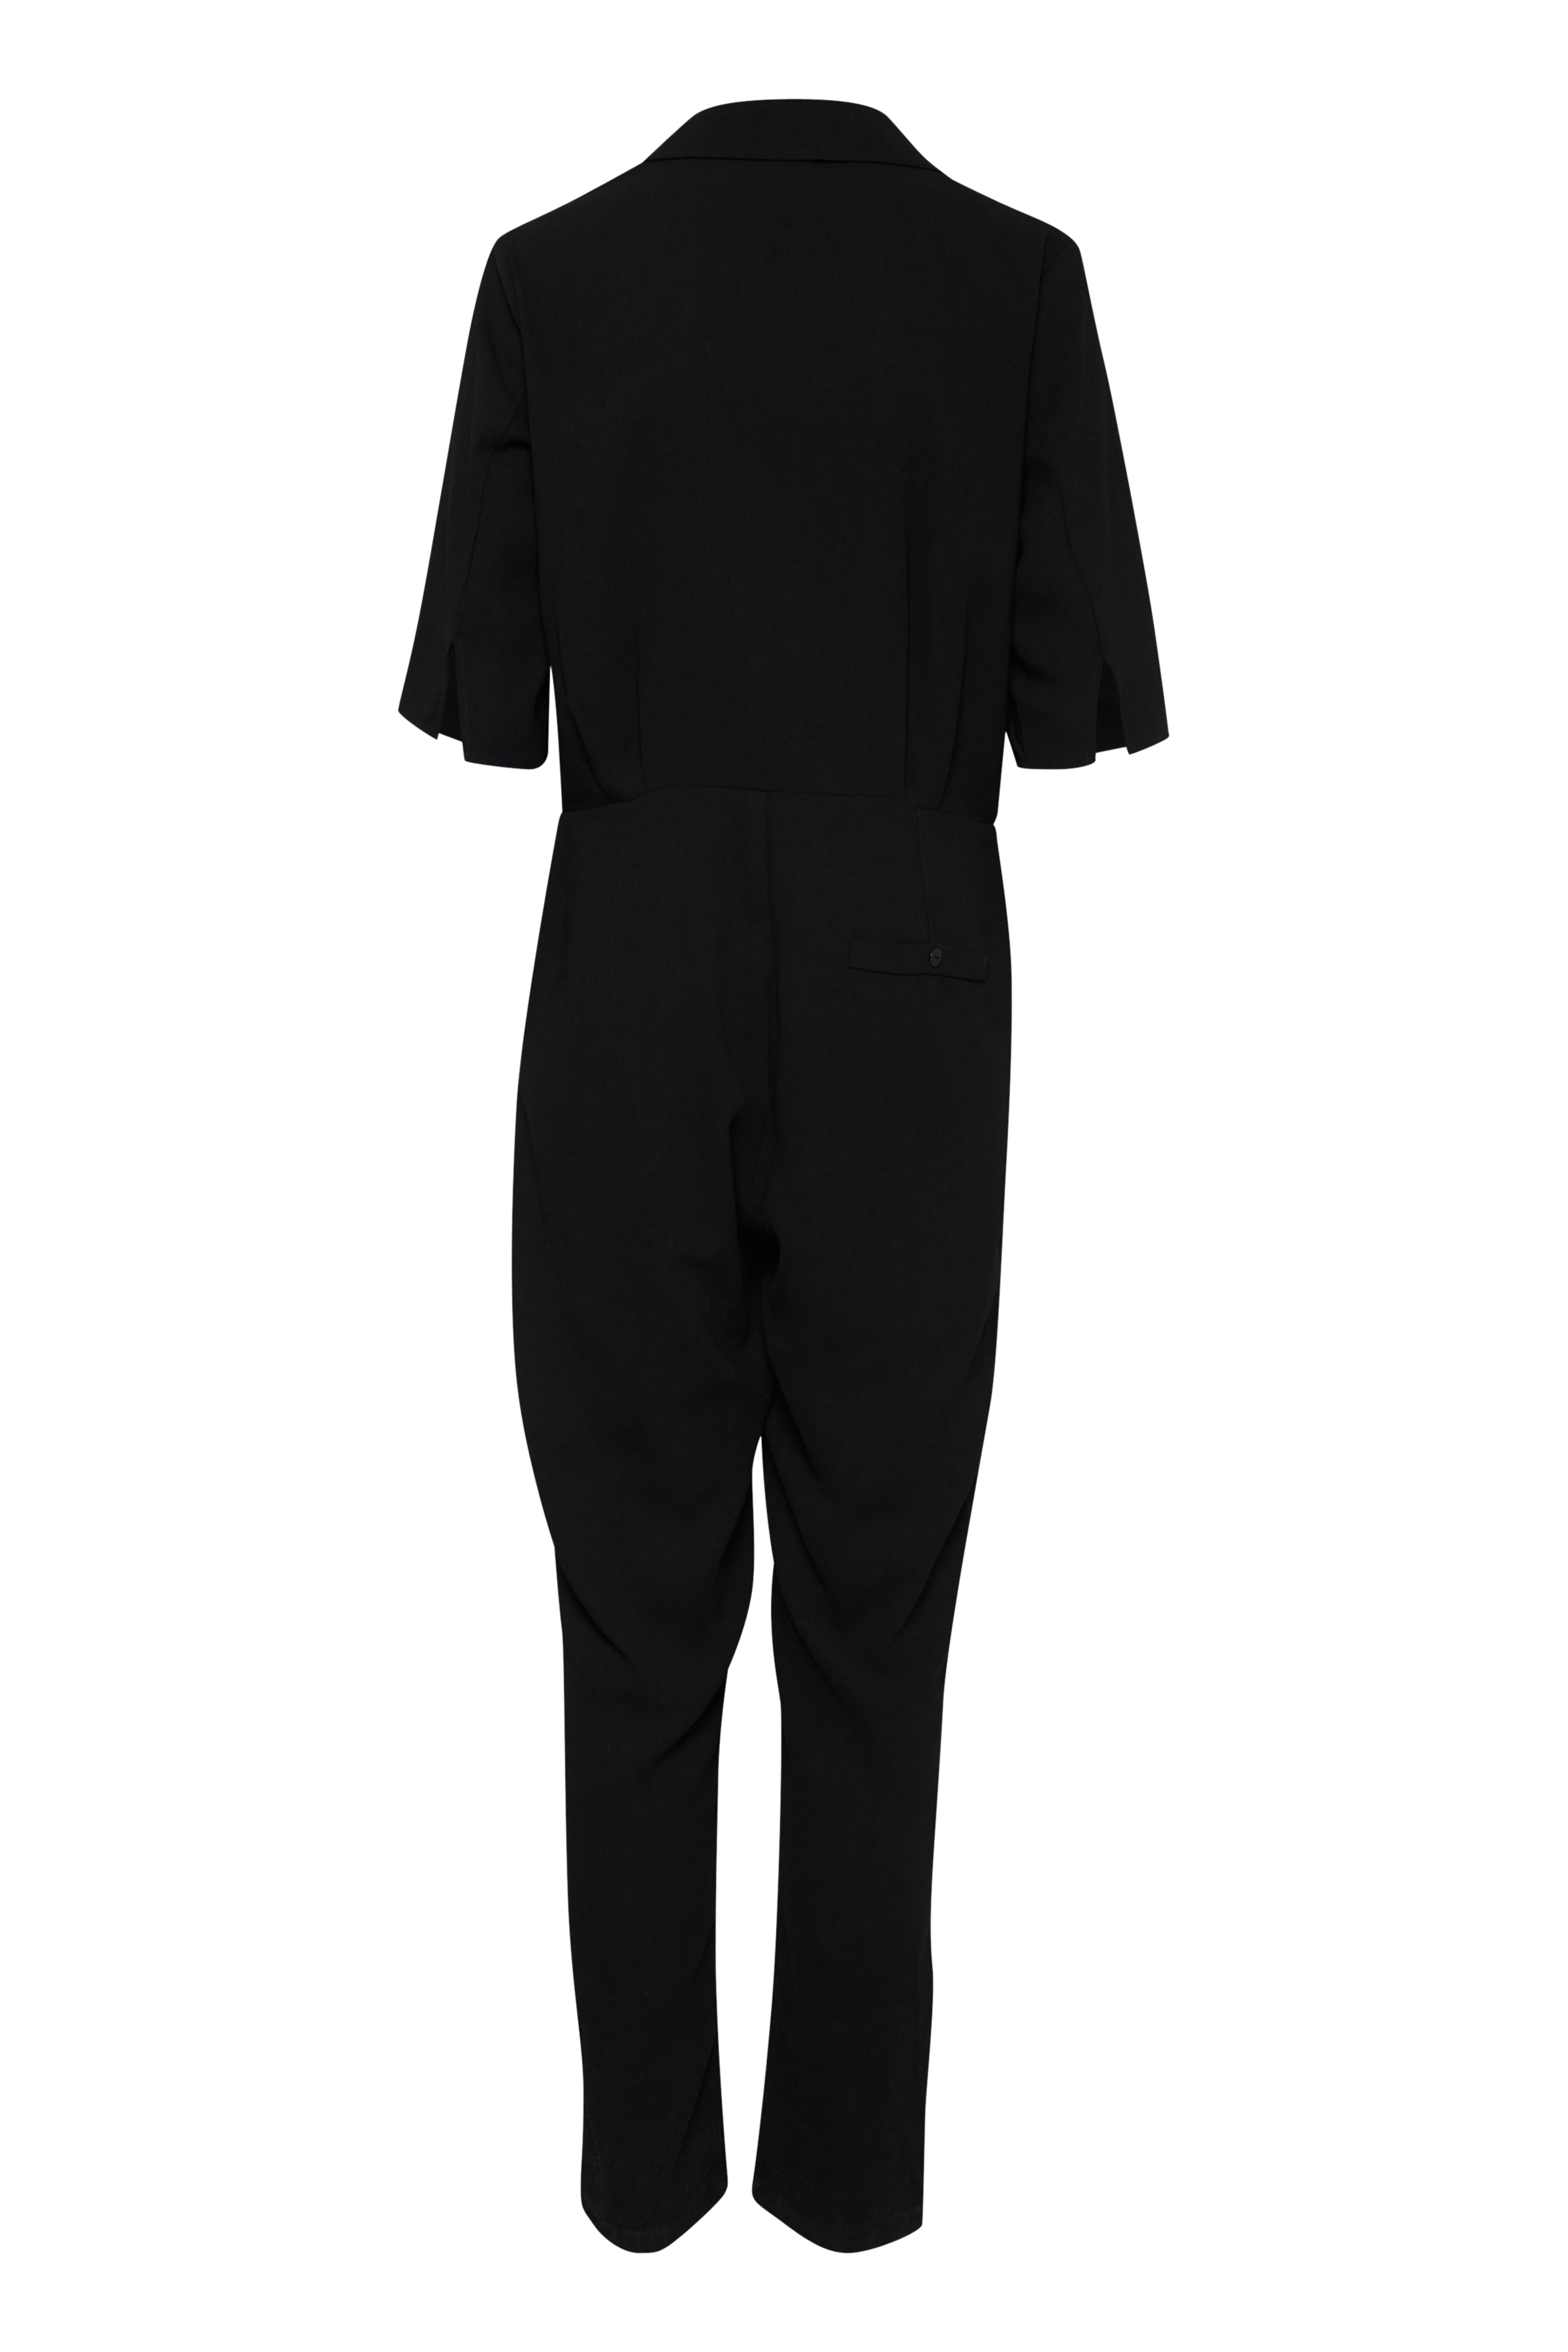 Black Jumpsuit from b.young – Buy Black Jumpsuit from size 34-42 here